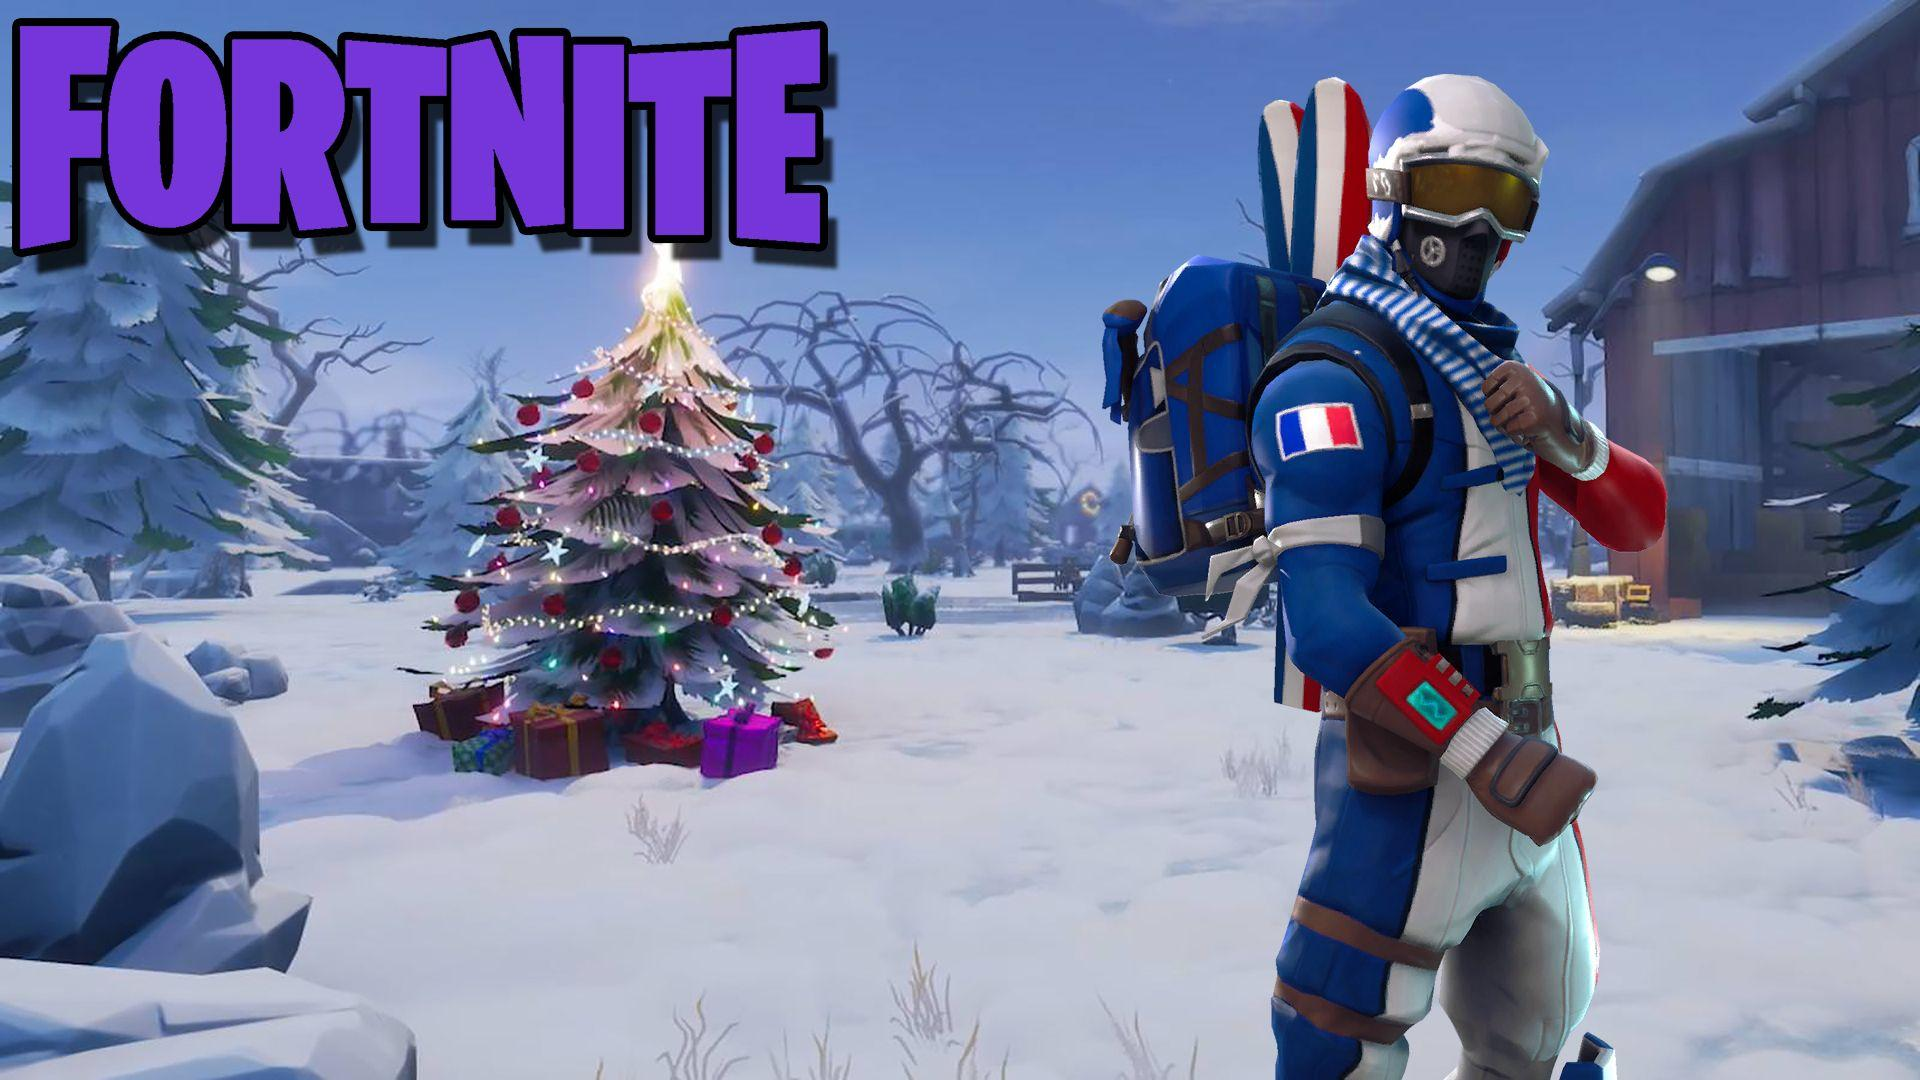 Alpine Ace (FRA) France Fortnite Outfit Skin | Fortnite Watch